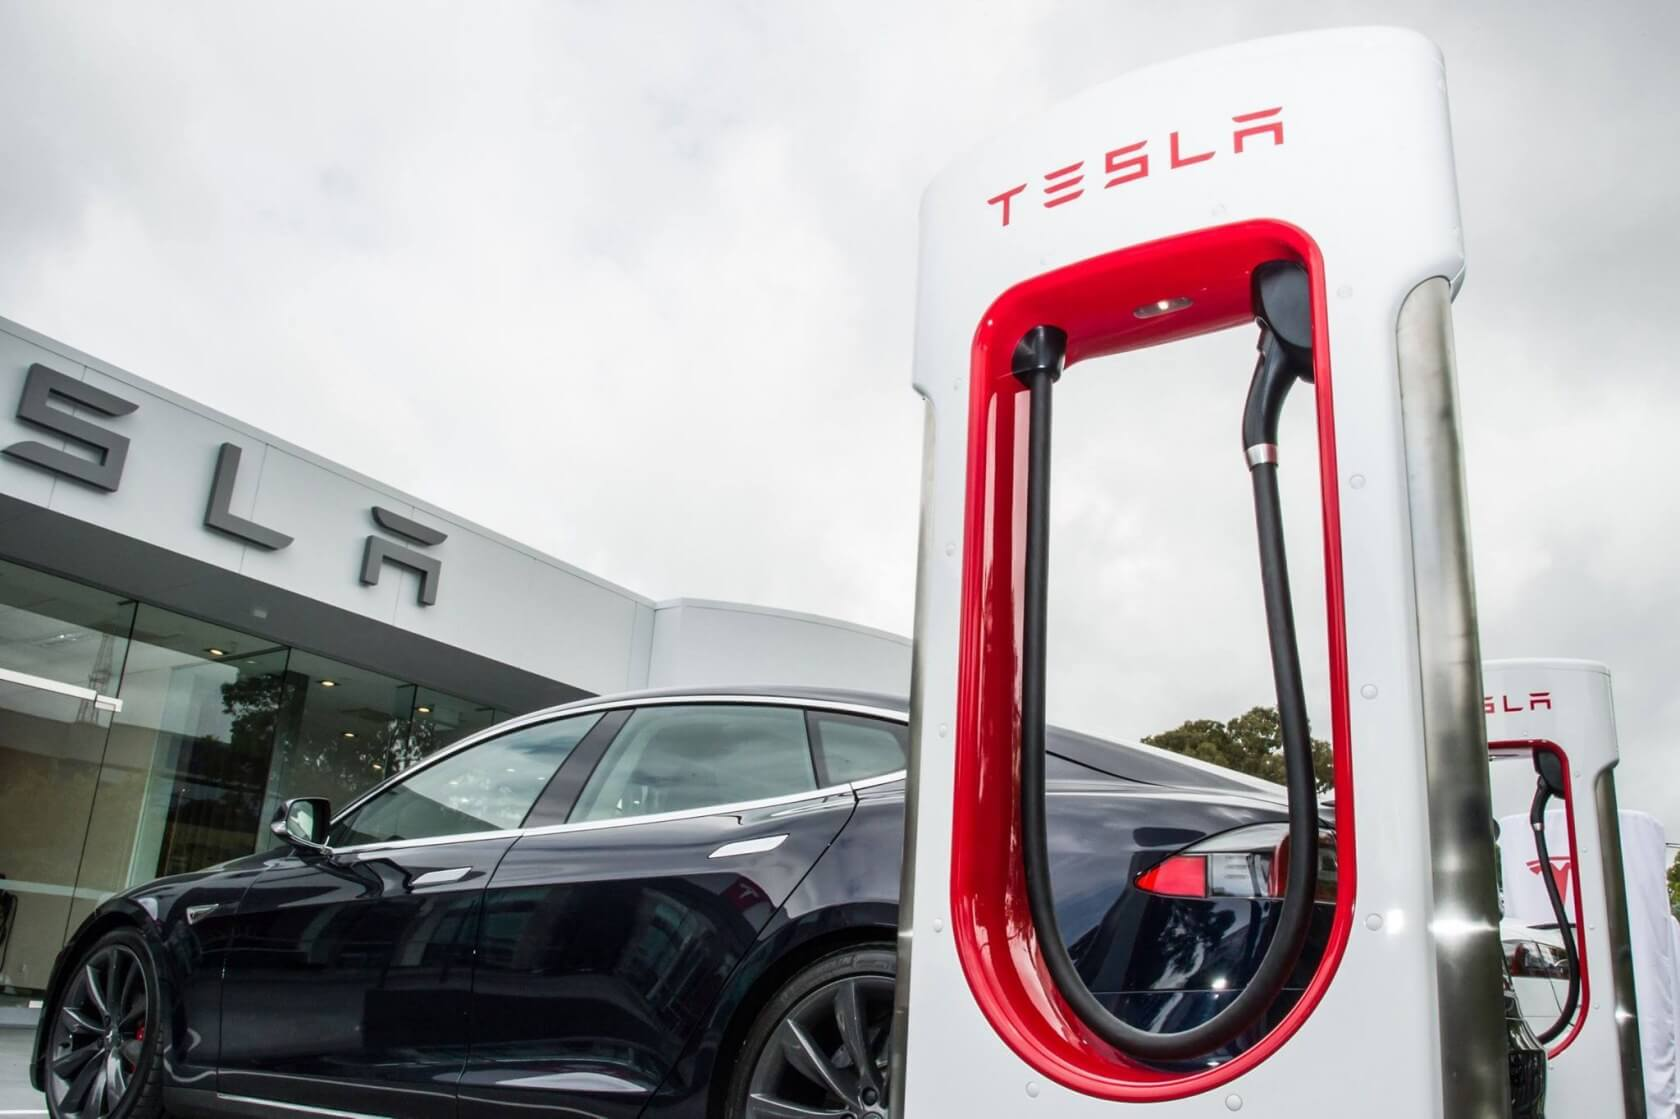 Tesla orders placed by October 15 eligible for full tax credit